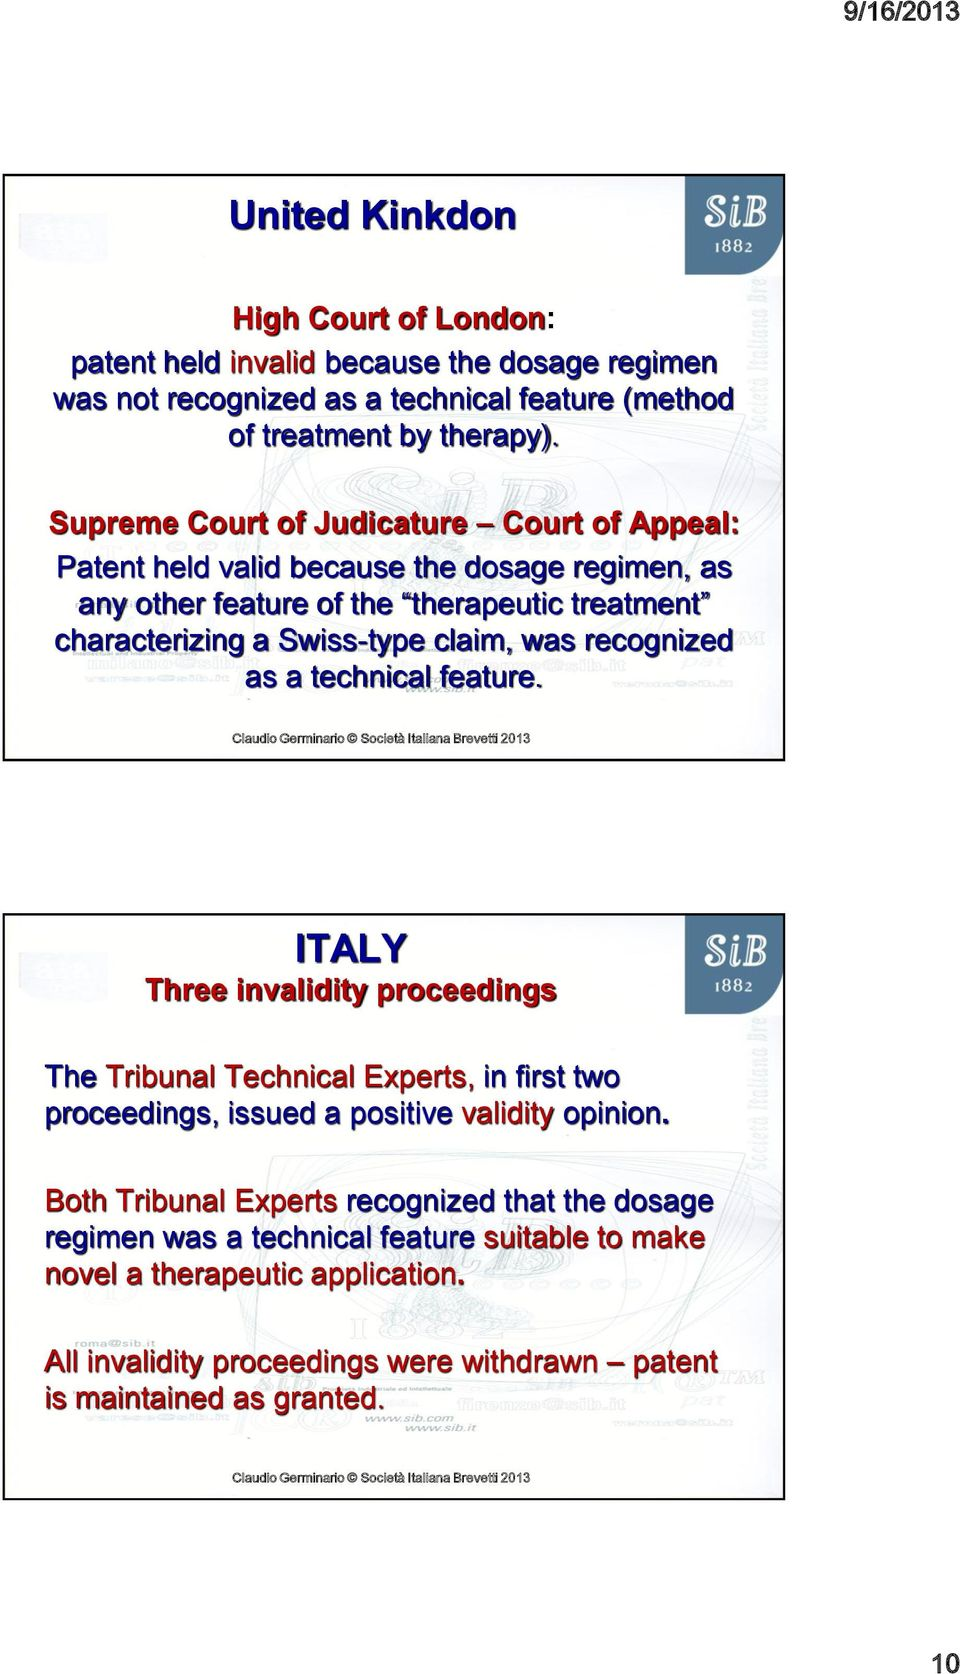 was recognized as a technical feature. ITALY Three invalidity proceedings The Tribunal Technical Experts, in first two proceedings, issued a positive validity opinion.